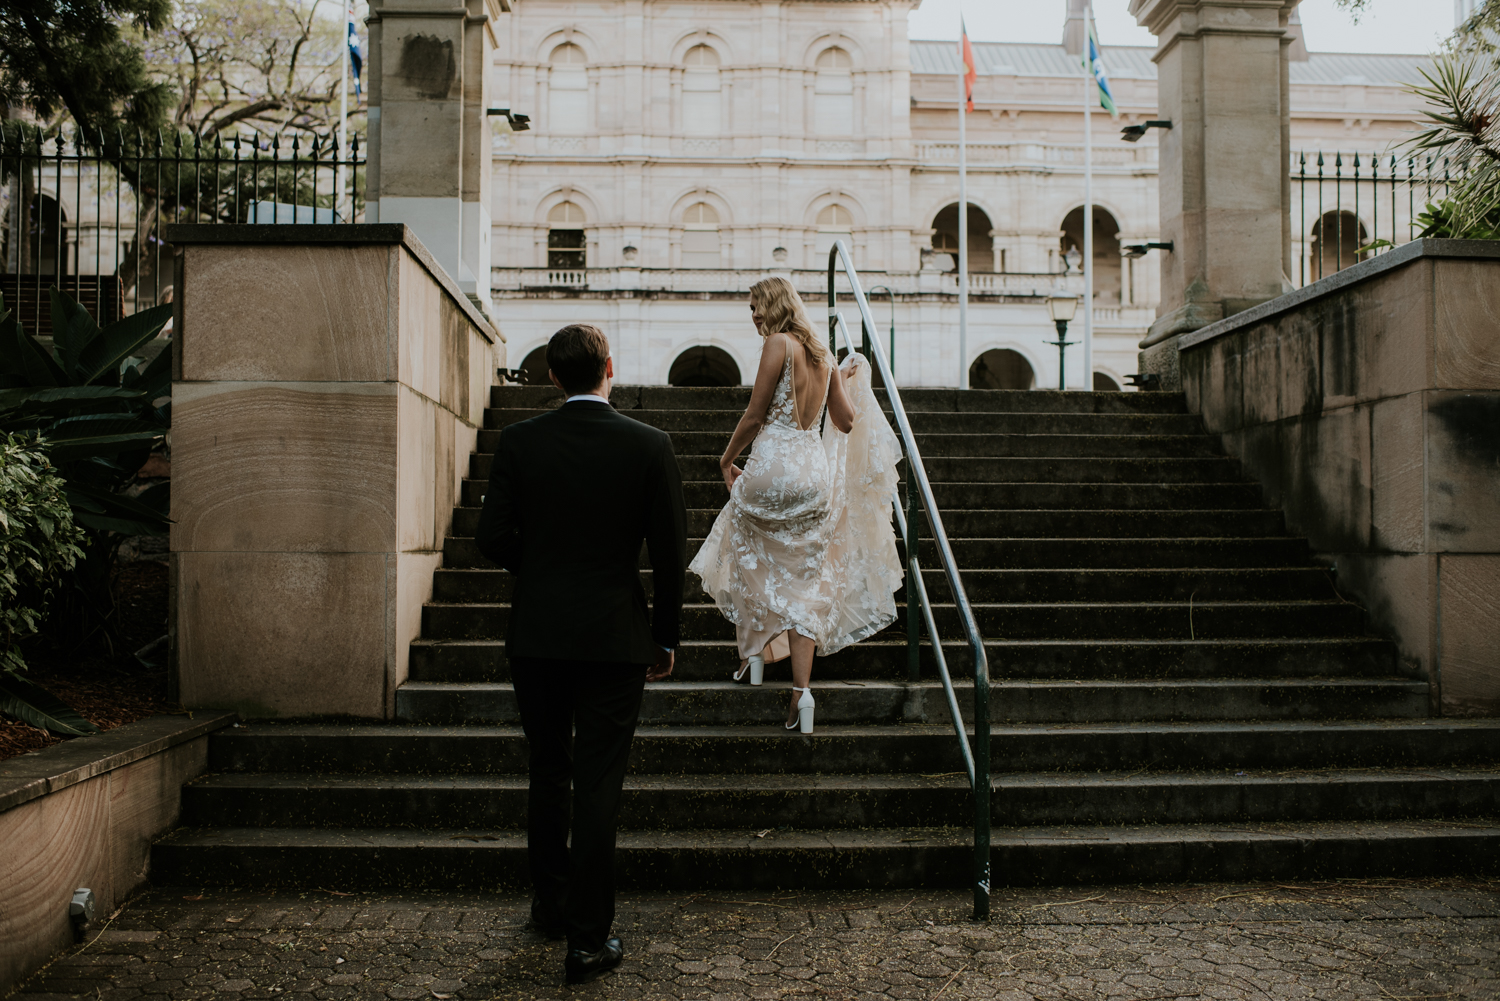 Brisbane Wedding Photographer | Engagement-Elopement Photography | Factory51-City Botantic Gardens Wedding-53.jpg